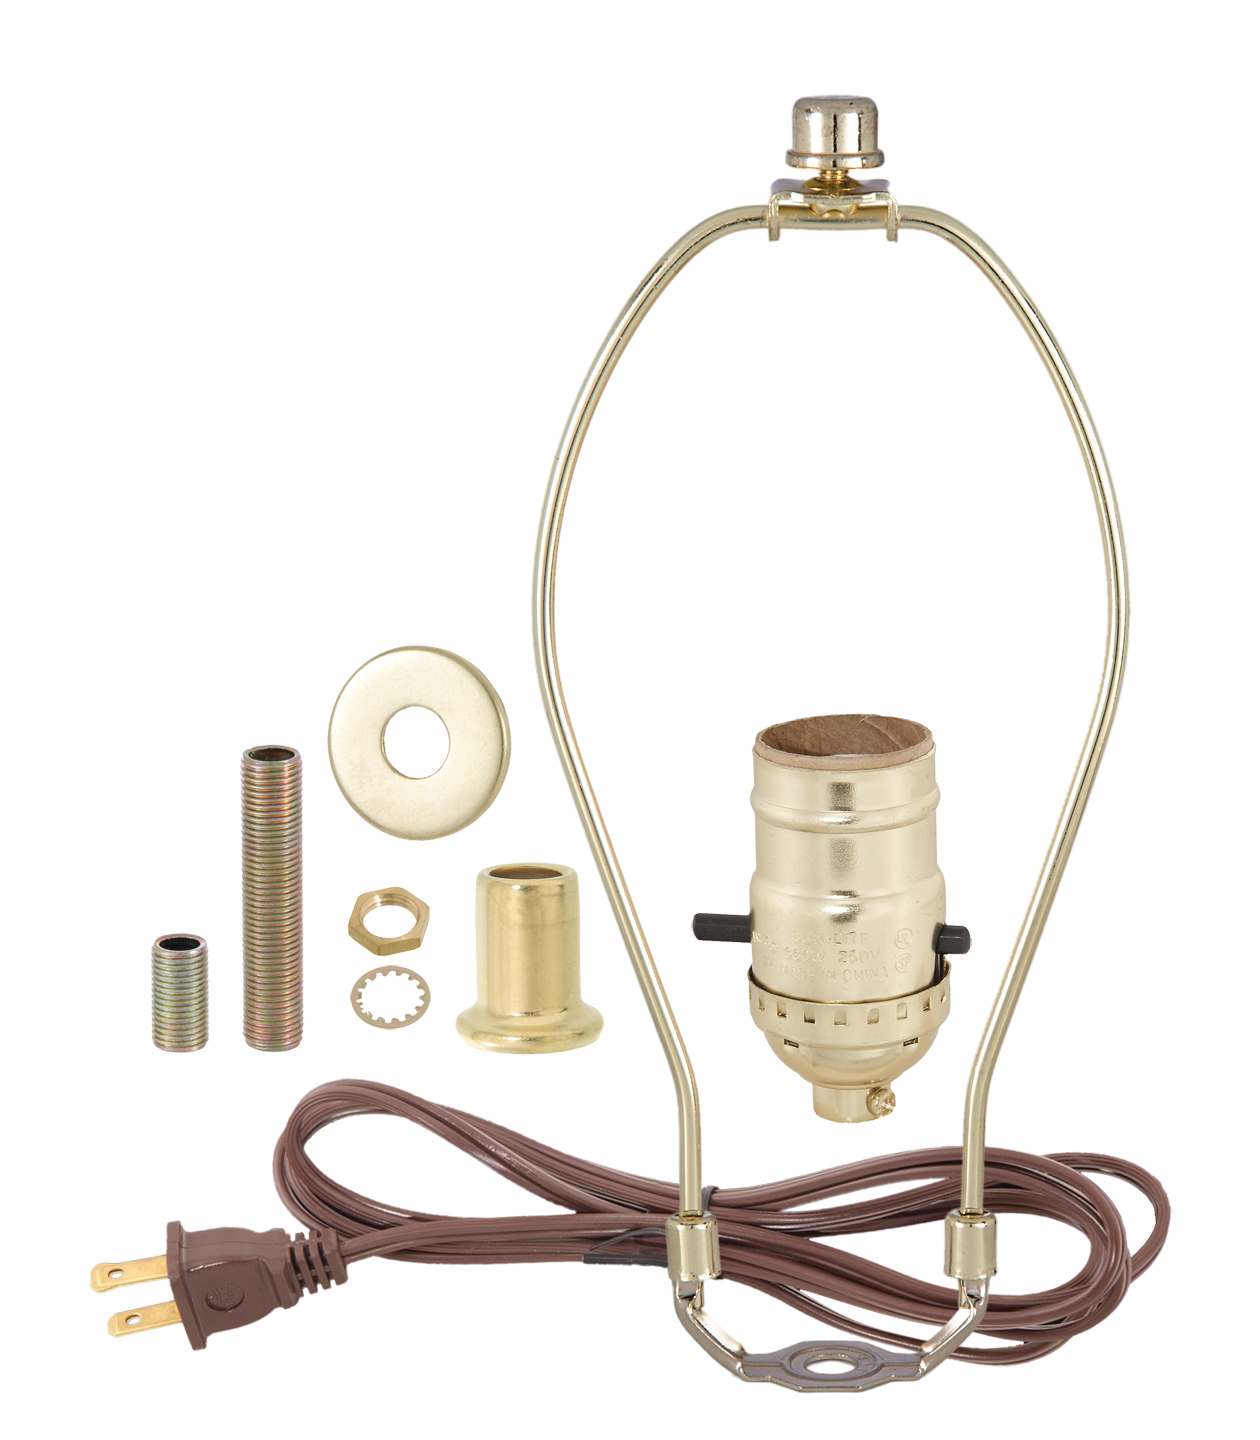 brass table lamp wiring kit with push thru socket 30552p10 b&p rh bplampsupply com antique floor lamp styles 30552p10 brass table lamp wiring kit with push thru socket